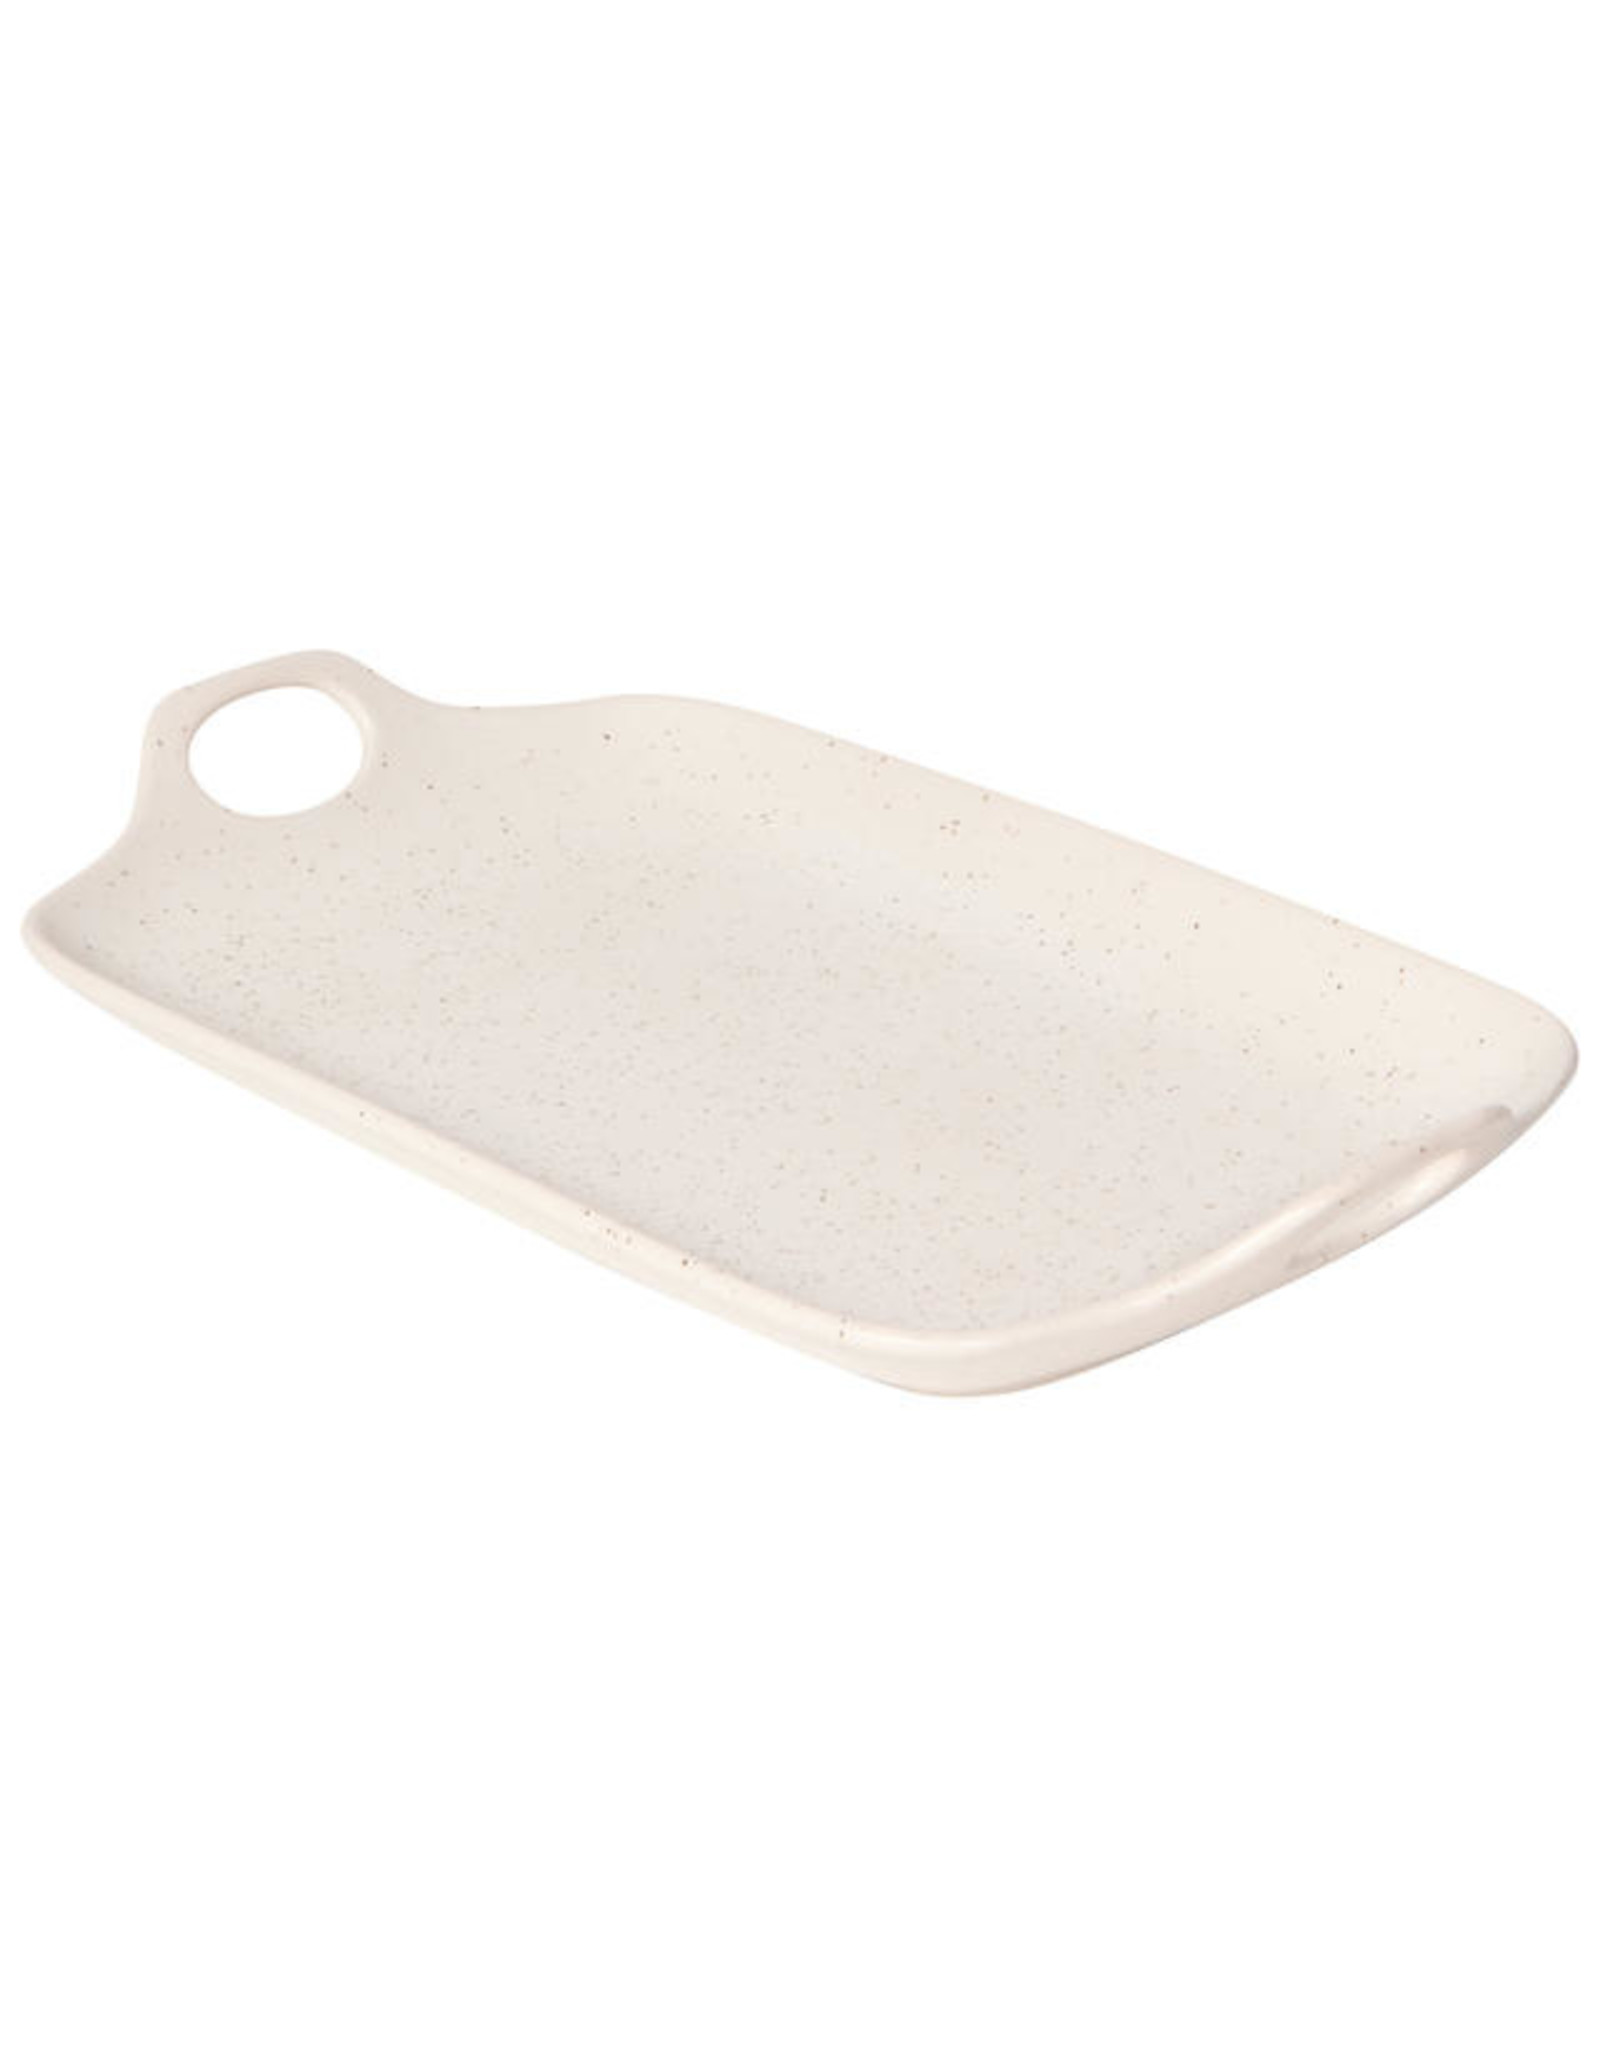 Terrain Serving Tray - Sandstone